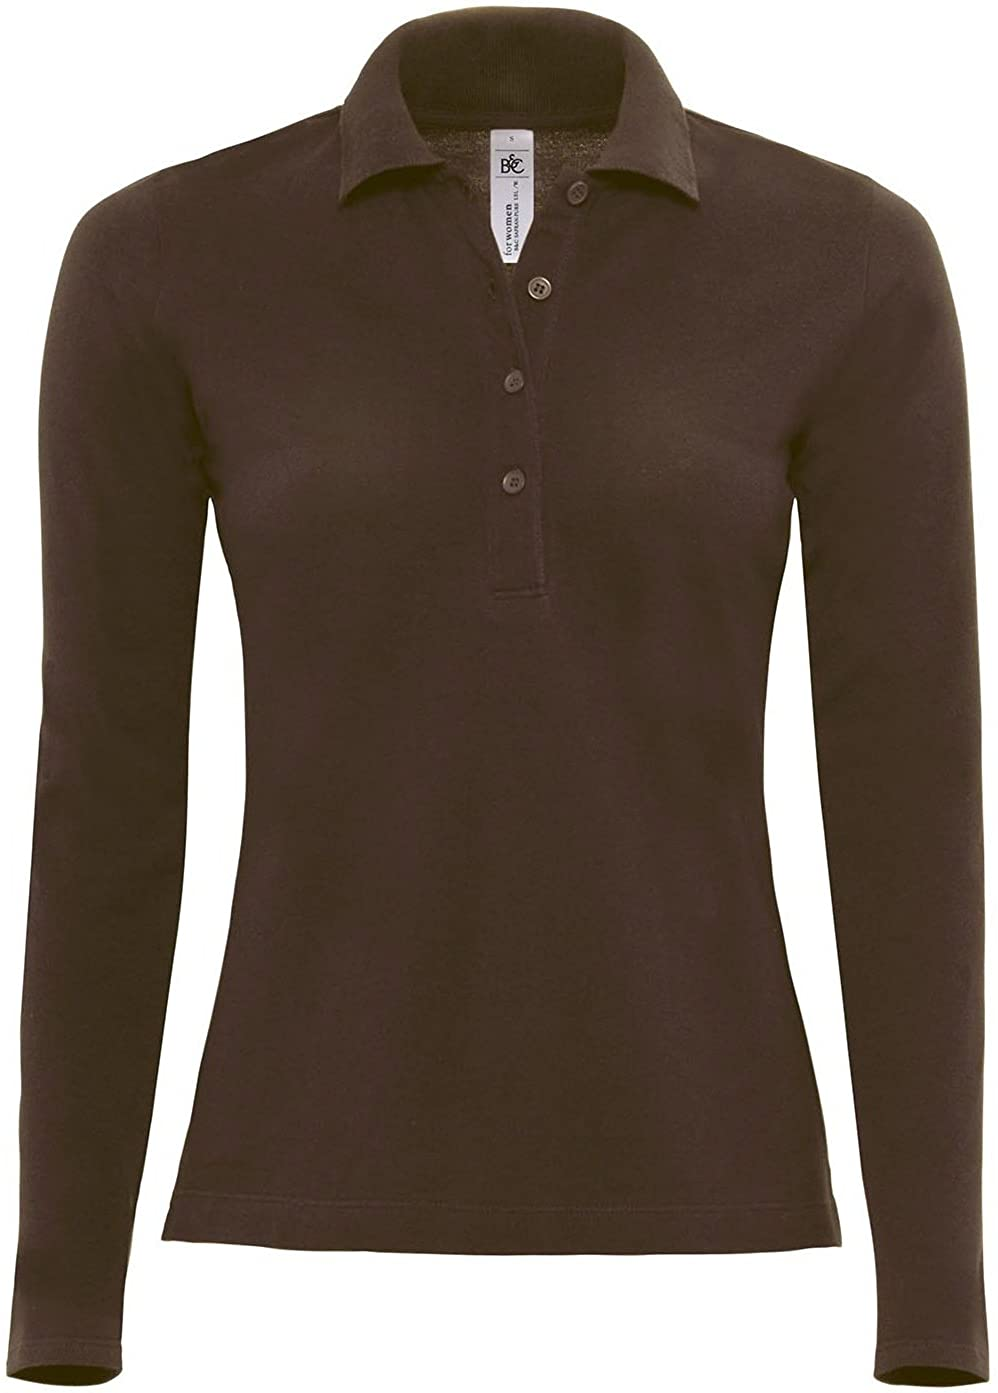 B&C Womens/Ladies Safran Long Sleeve Polo Shirt (6 US) (Brown)